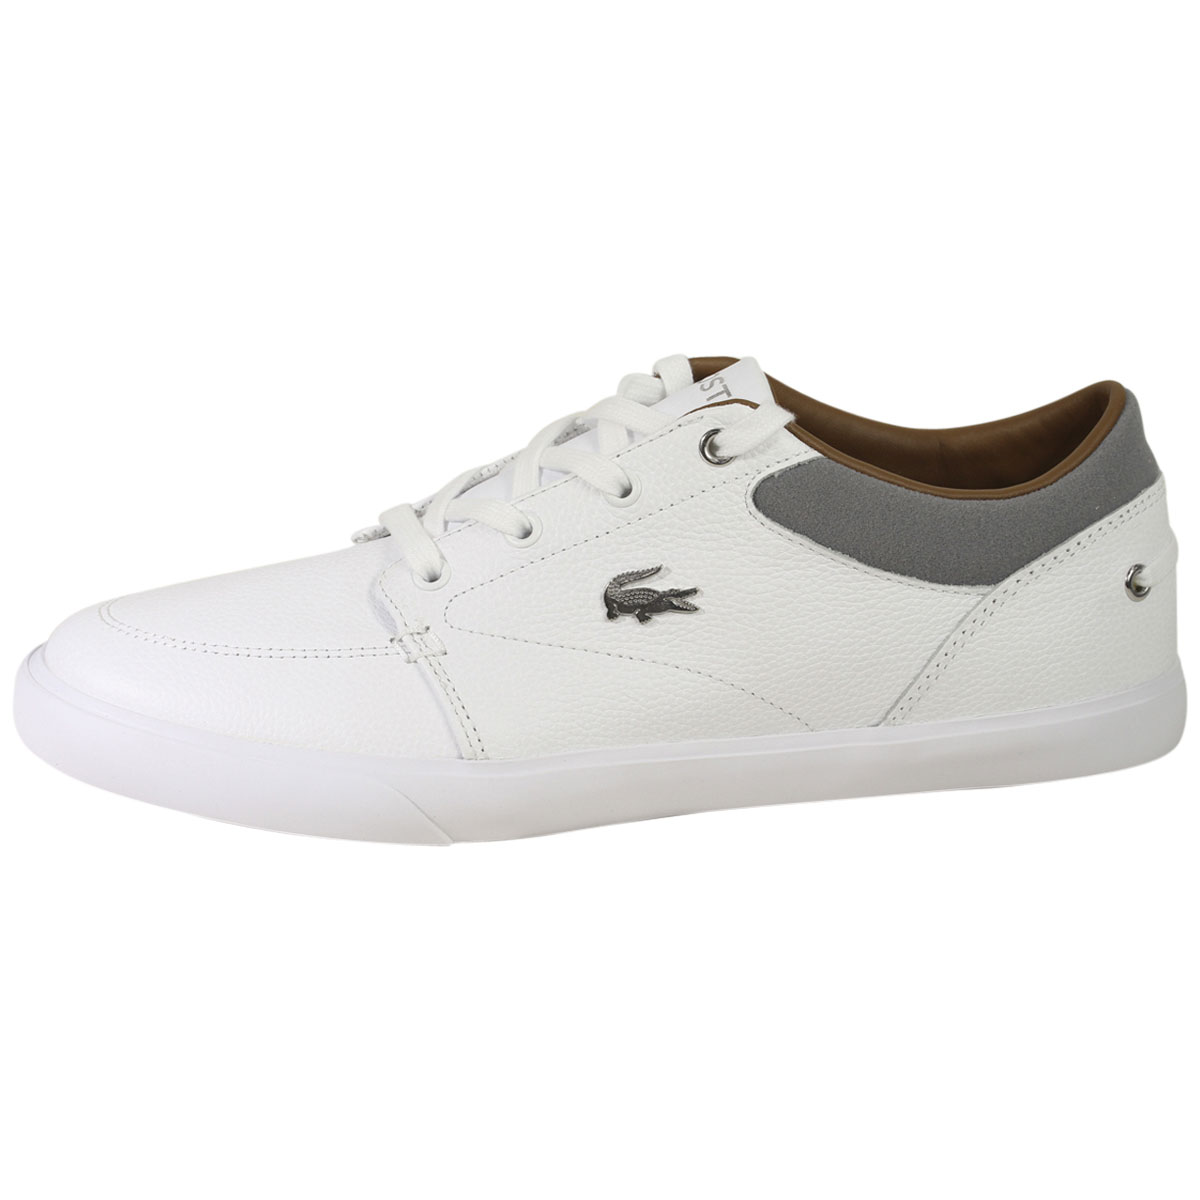 Lacoste-Men-039-s-Bayliss-118-Sneakers-Shoes thumbnail 17